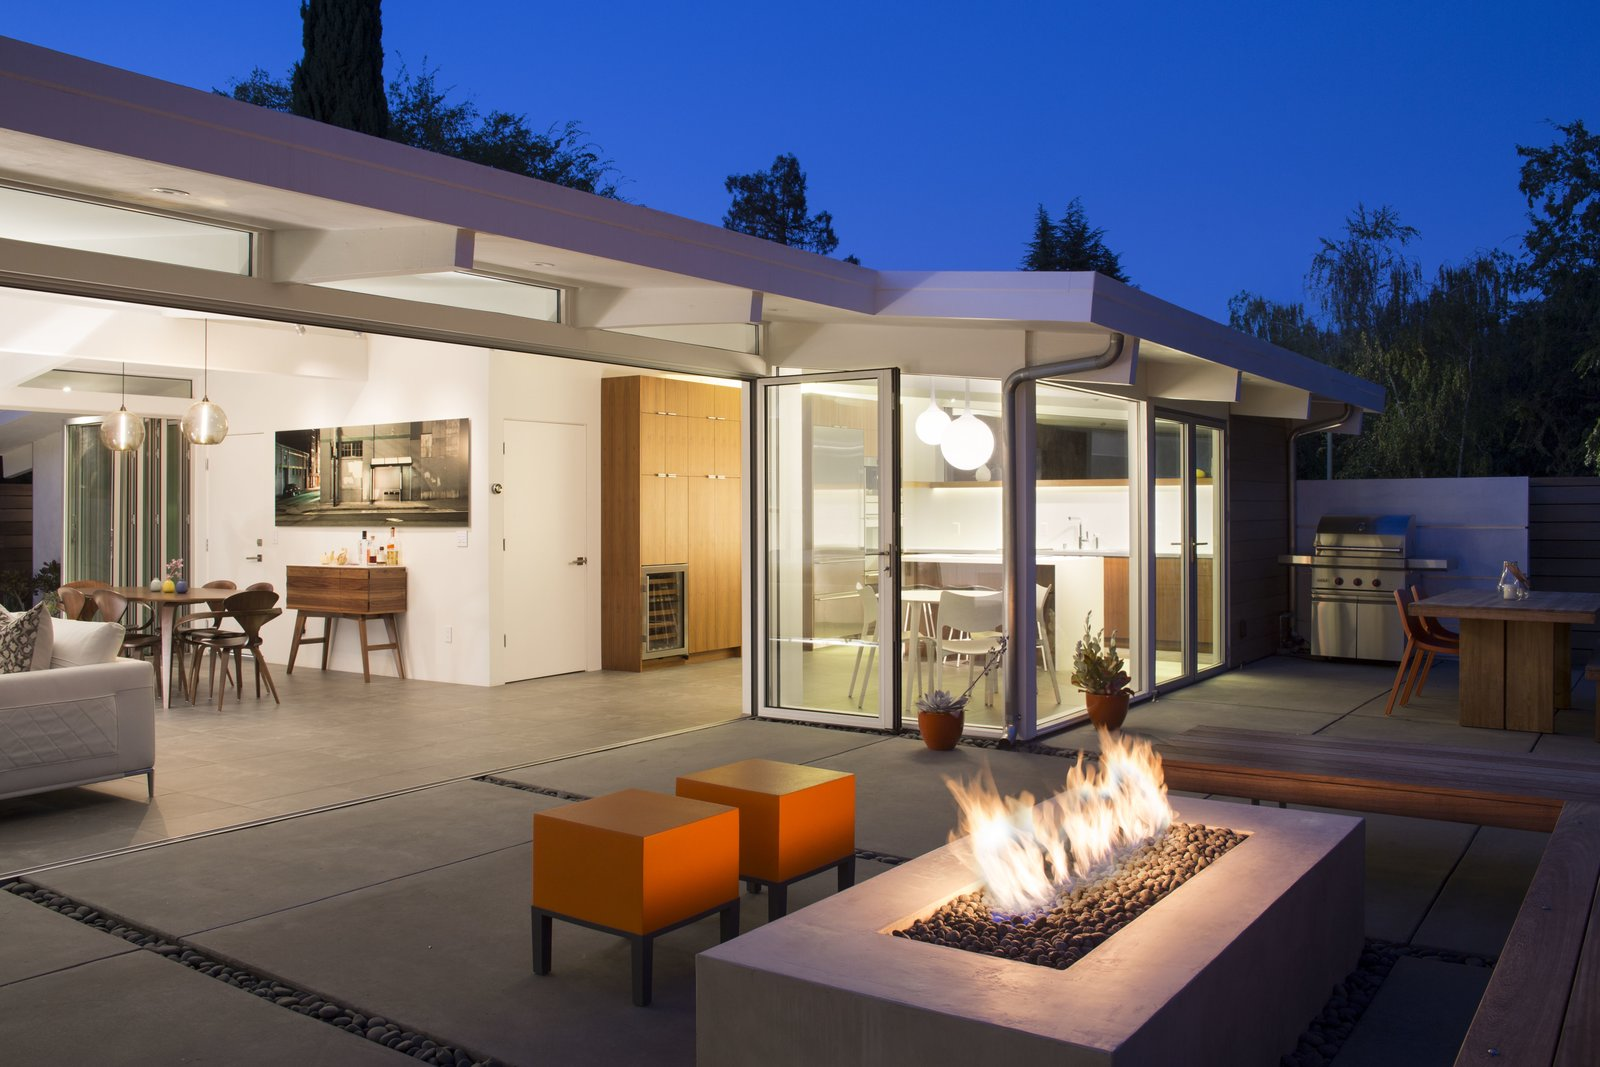 Truly Open Eichler Remodel  Klopf Architecture, Arterra Landscape Architects, and Flegels Construction updated a classic Eichler open, indoor-outdoor home. Expanding on the original walls of glass and connection to nature that is common in mid-century modern homes. The completely openable walls allow the homeowners to truly open up the living space of the house, transforming it into an open air pavilion, extending the living area outdoors to the private side yards, and taking maximum advantage of indoor-outdoor living opportunities. Taking the concept of borrowed landscape from traditional Japanese architecture, the fountain, concrete bench wall, and natural landscaping bound the indoor-outdoor space. The Truly Open Eichler is a remodeled single-family house in Palo Alto. This 1,712 square foot, 3 bedroom, 2.5 bathroom is located in the heart of the Silicon Valley.  Klopf Architecture by Klopf Architecture